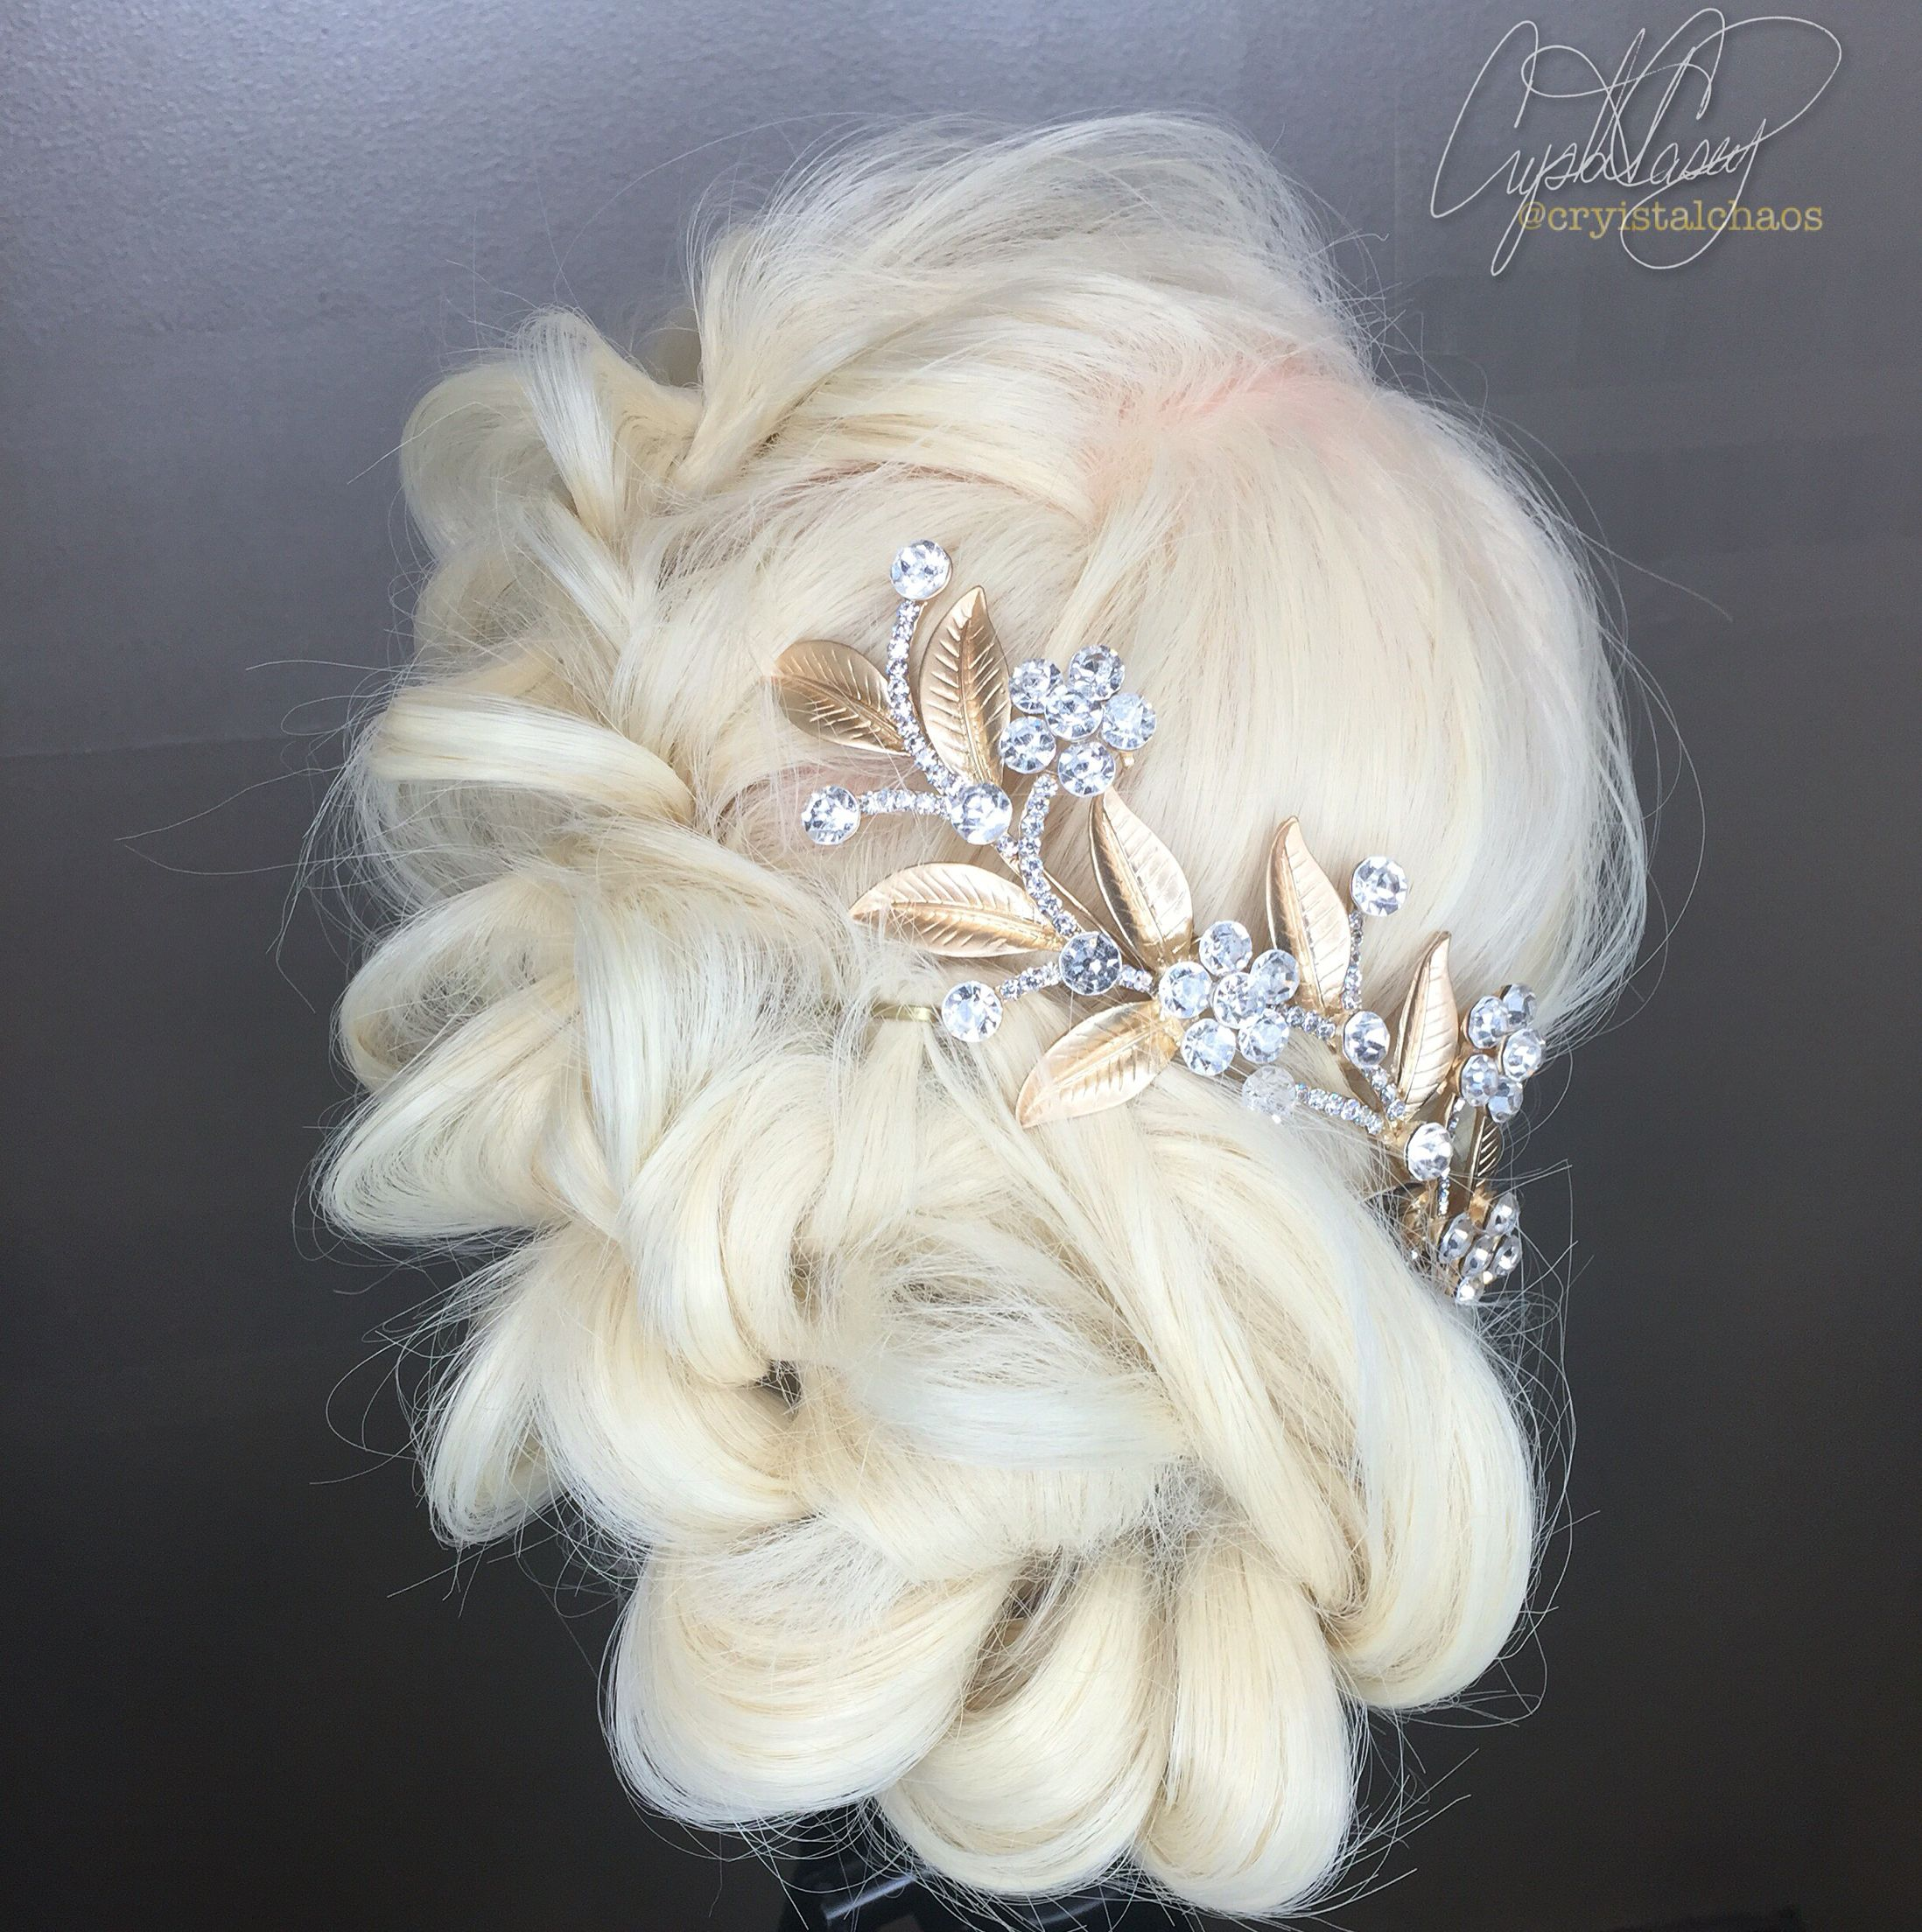 Braided Wedding Hair Instagram @CryistalChaos #virginiabeach #prom ...